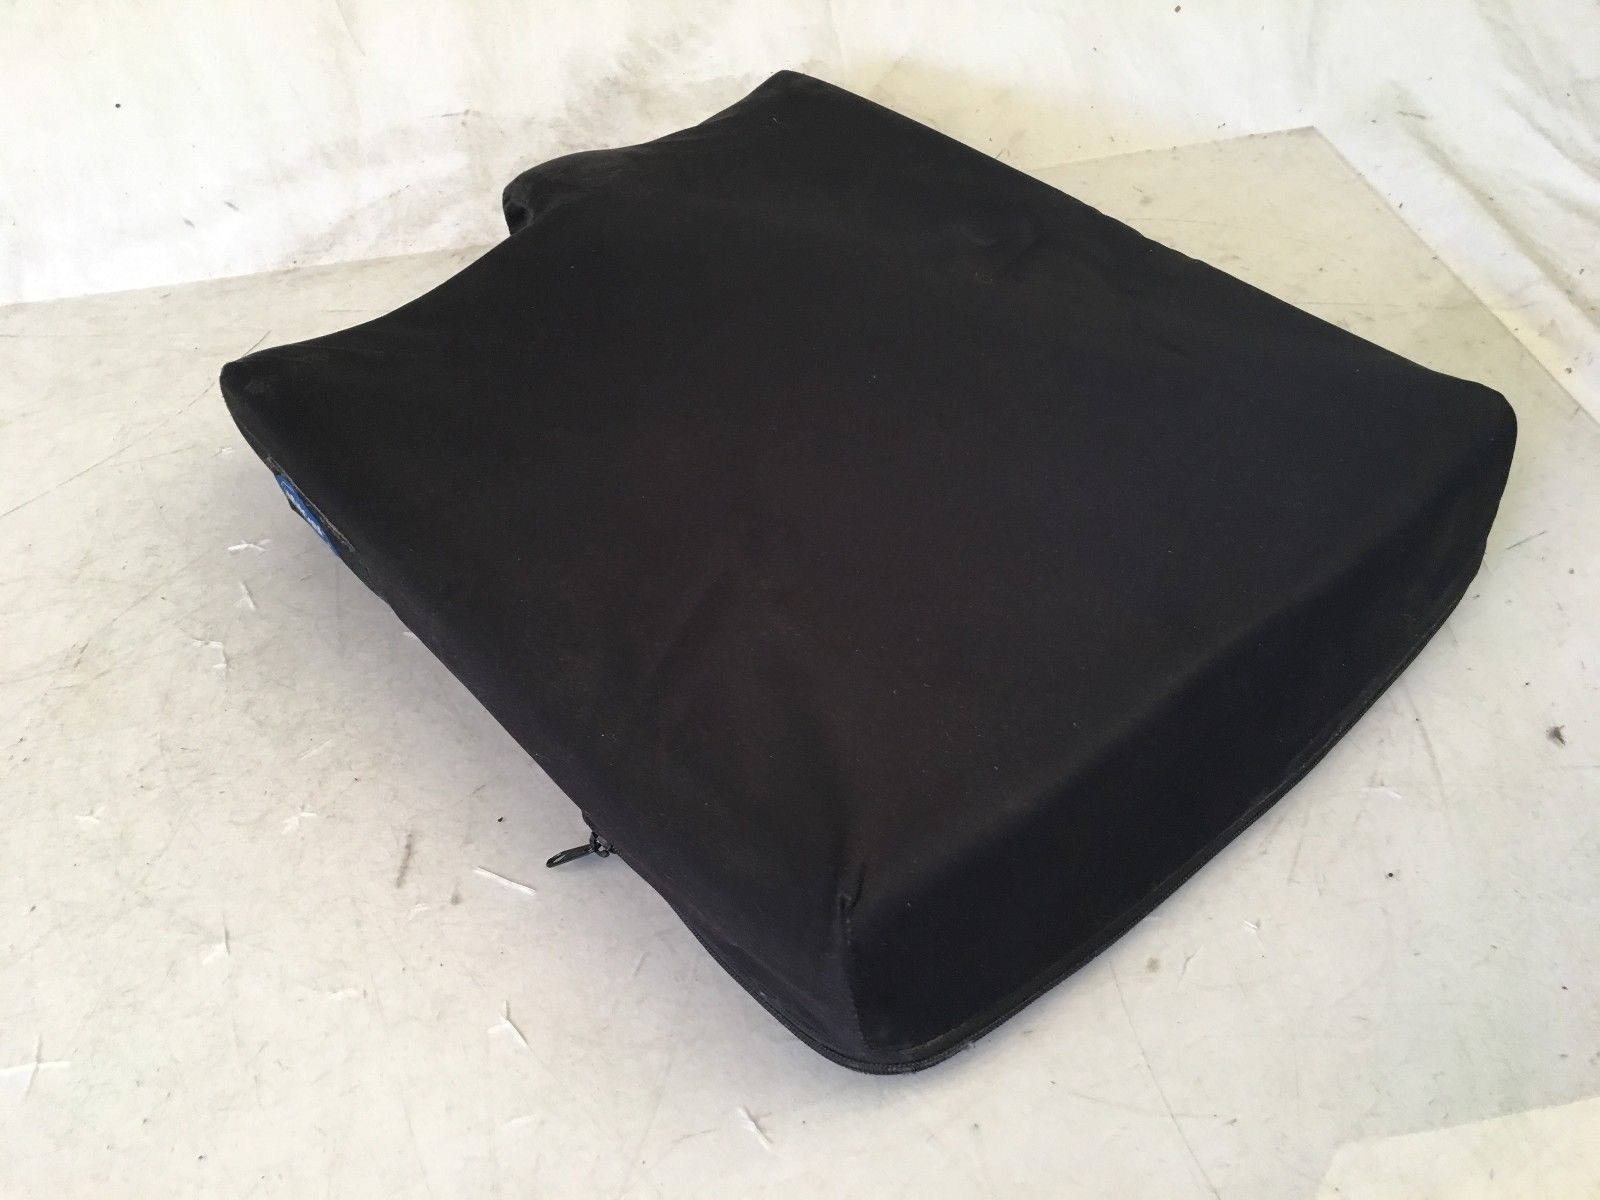 20x15x4 IGC Seat Cushion Invacare from Invacare TDX SP Power Wheelchairs